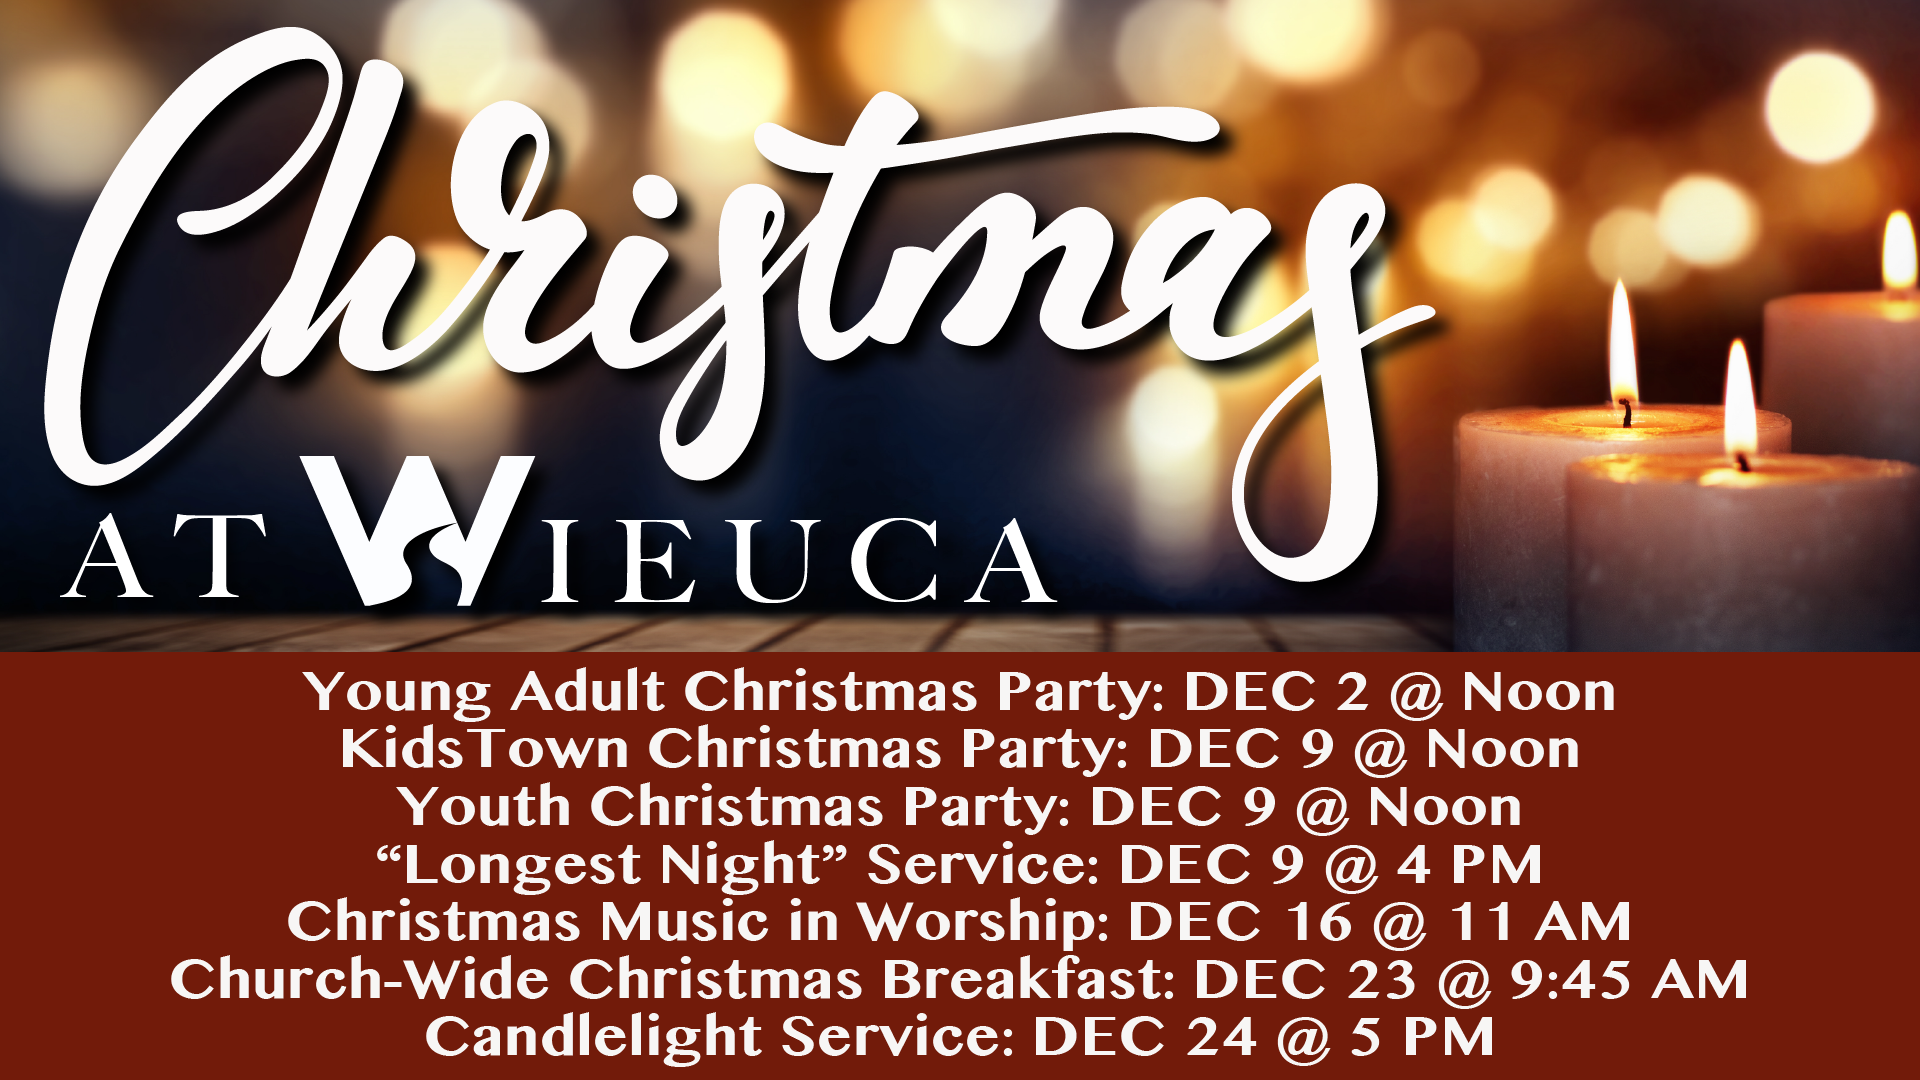 http://www.wieuca.org/uploads/Christmas-at-Wieuca.png